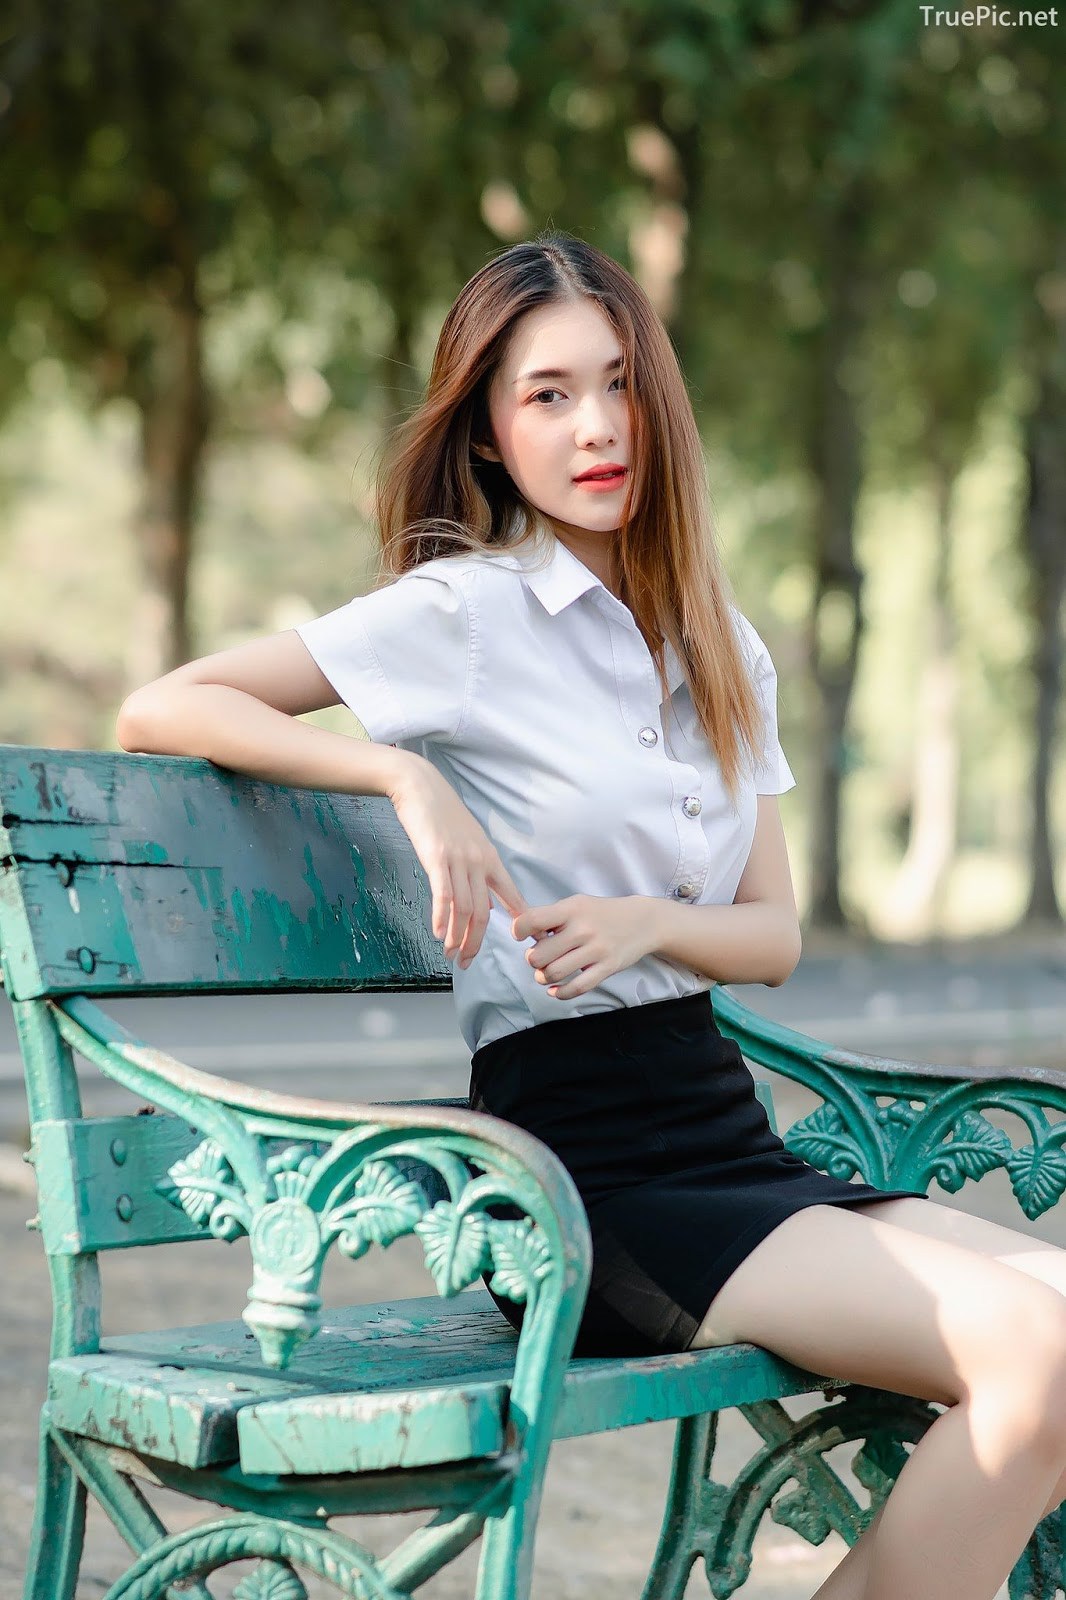 Image-Hot-Girl-Thailand-Pitcha-Srisattabuth-Cute-Student-With-a-Sweet-Smile-TruePic.net- Picture-5